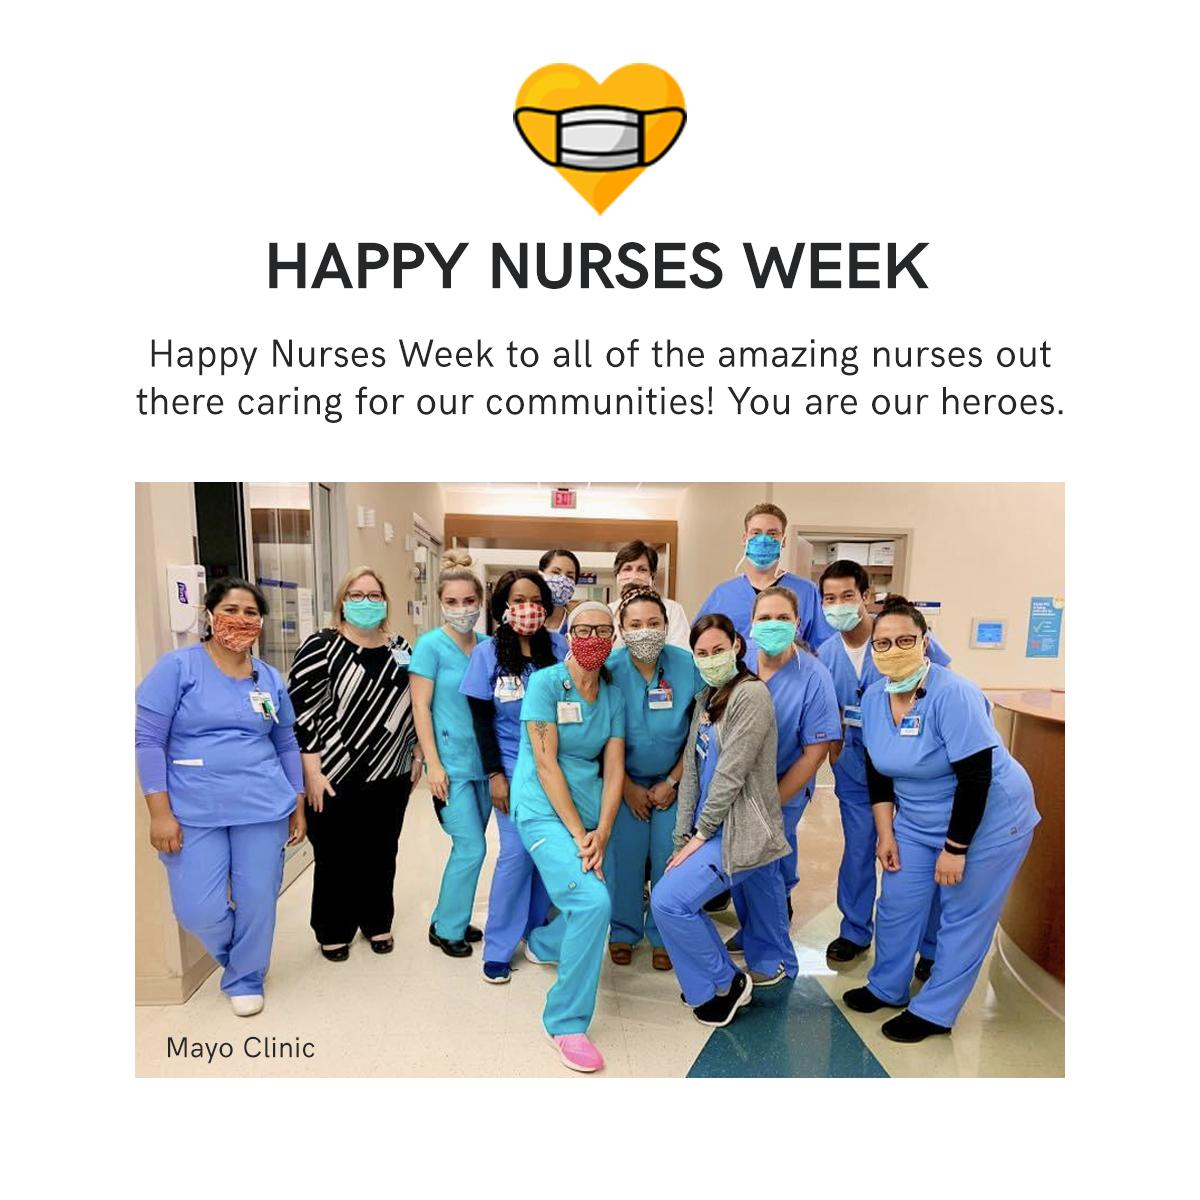 A huge thank you to all of the brave, hard-working nurses on the front lines. You are are heroes! #nursesweek #nursesweek2020 https://t.co/Yurx3q3Uv1